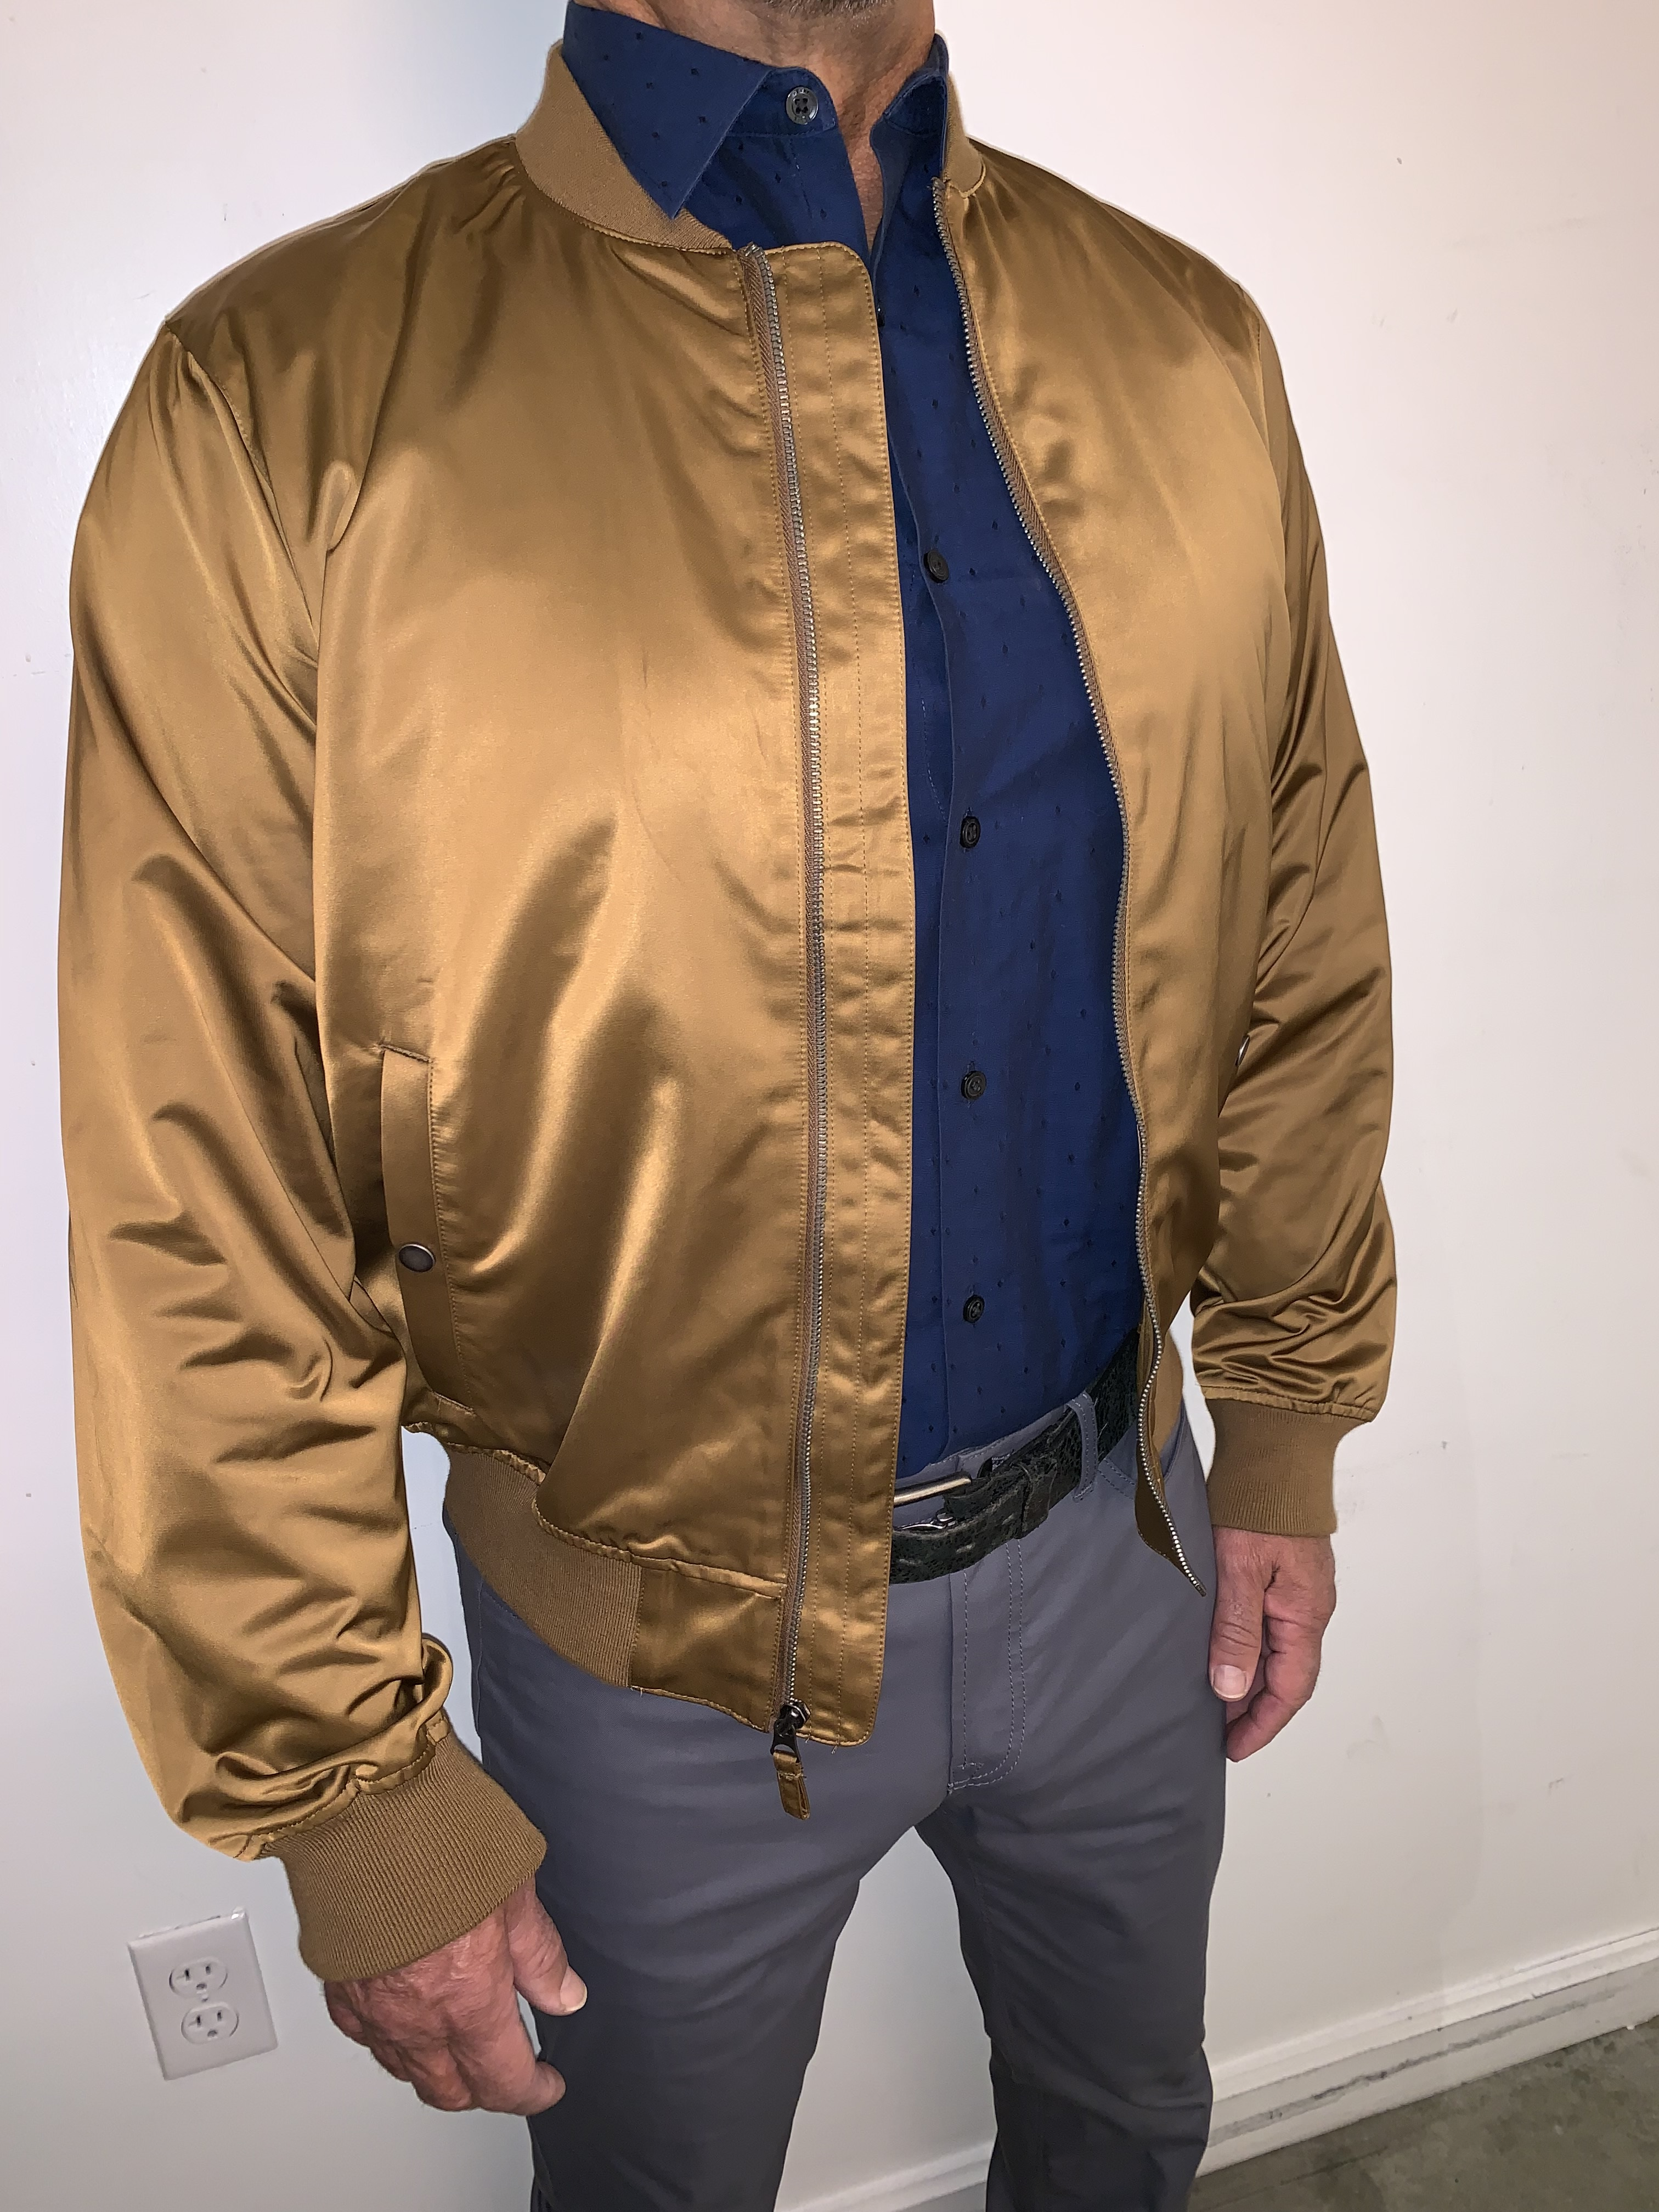 Get an Edge Up on Fall Outerwear, men's fall jacket trends 2019, men's bomber jackets, Bonobos bomber jacket